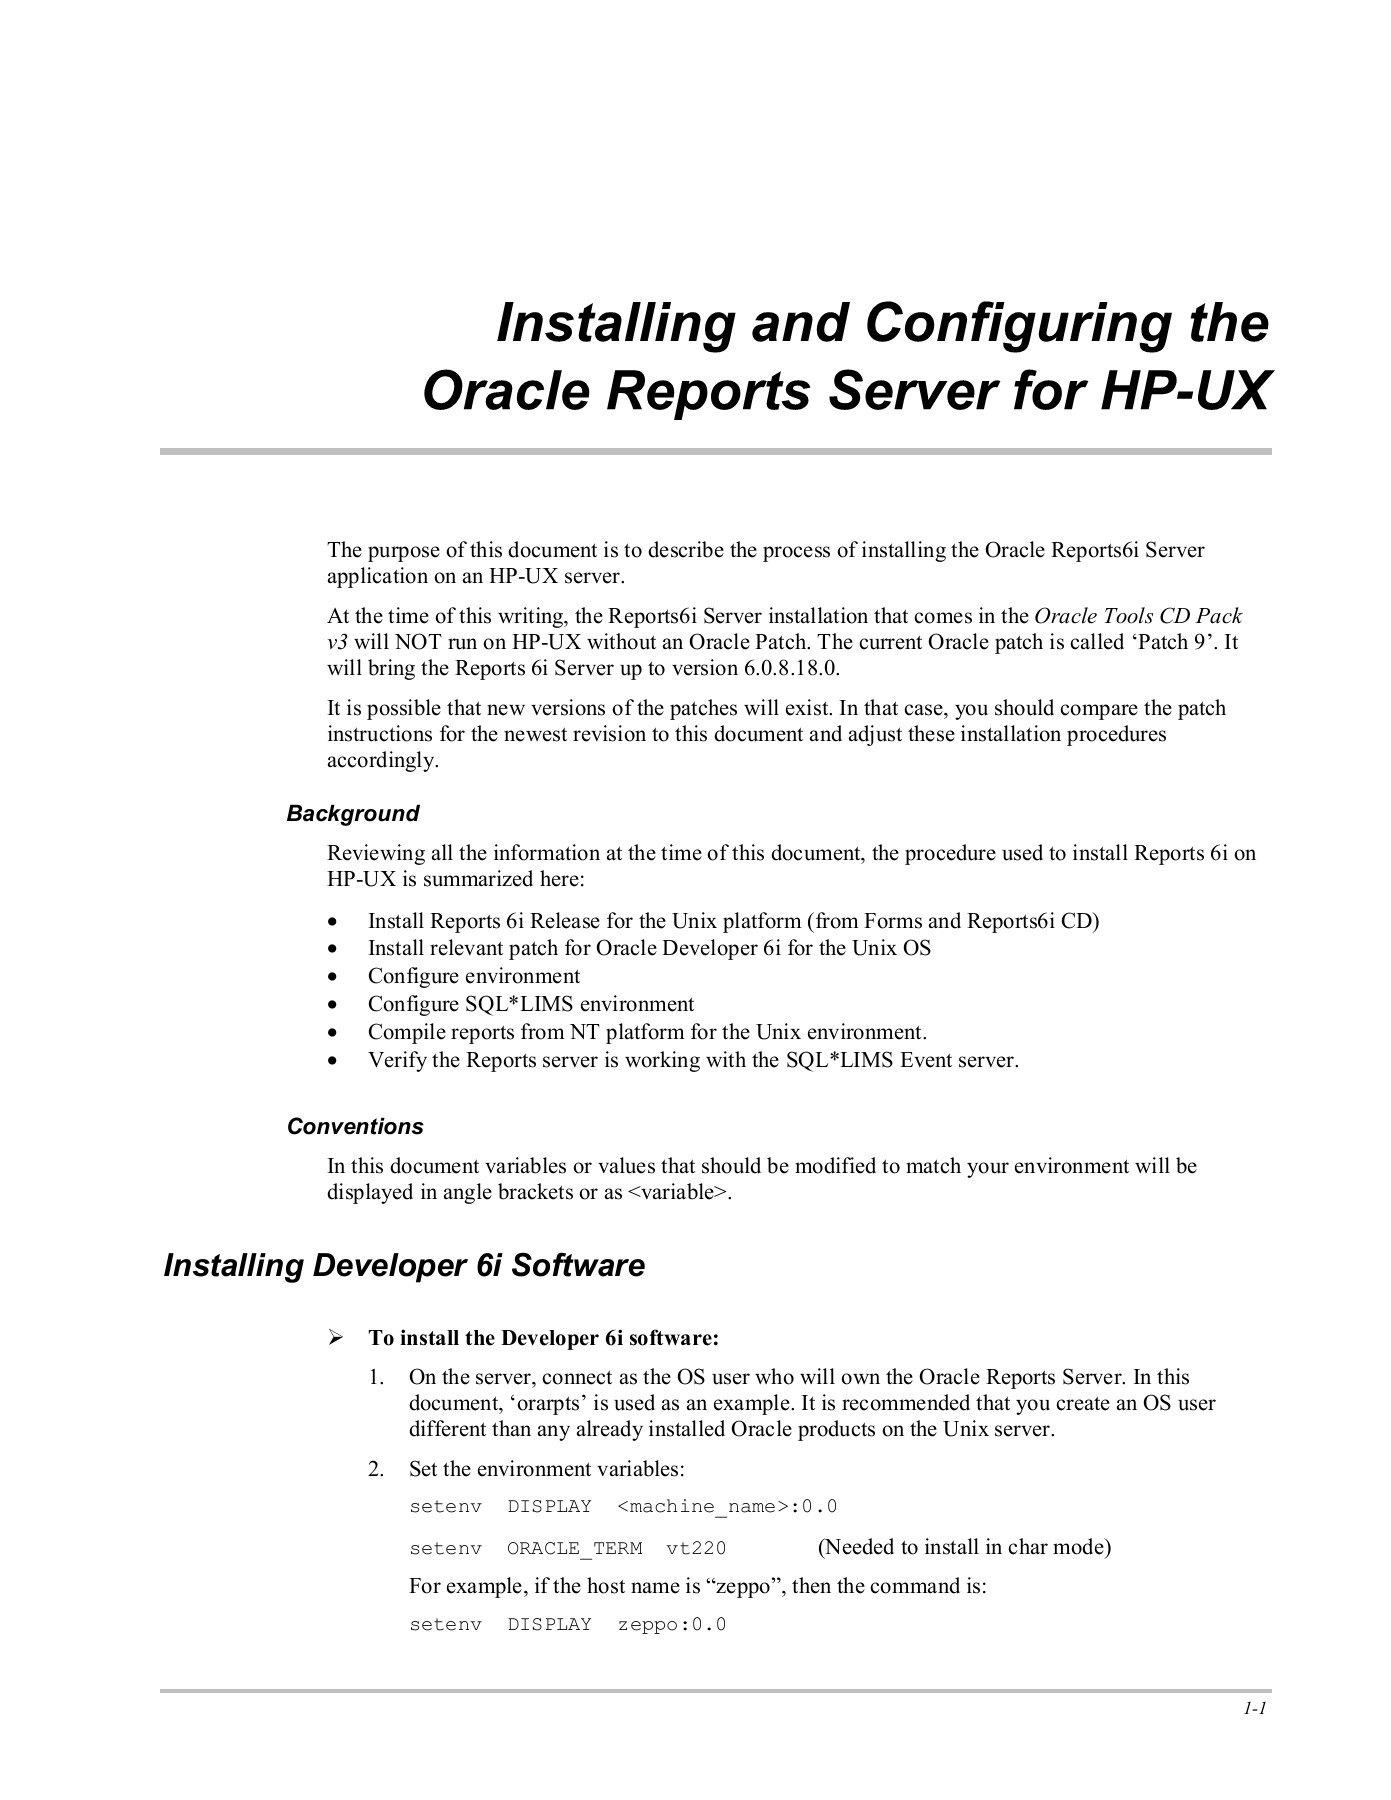 Oracle Reports Server Installation and Configuration Pages 1